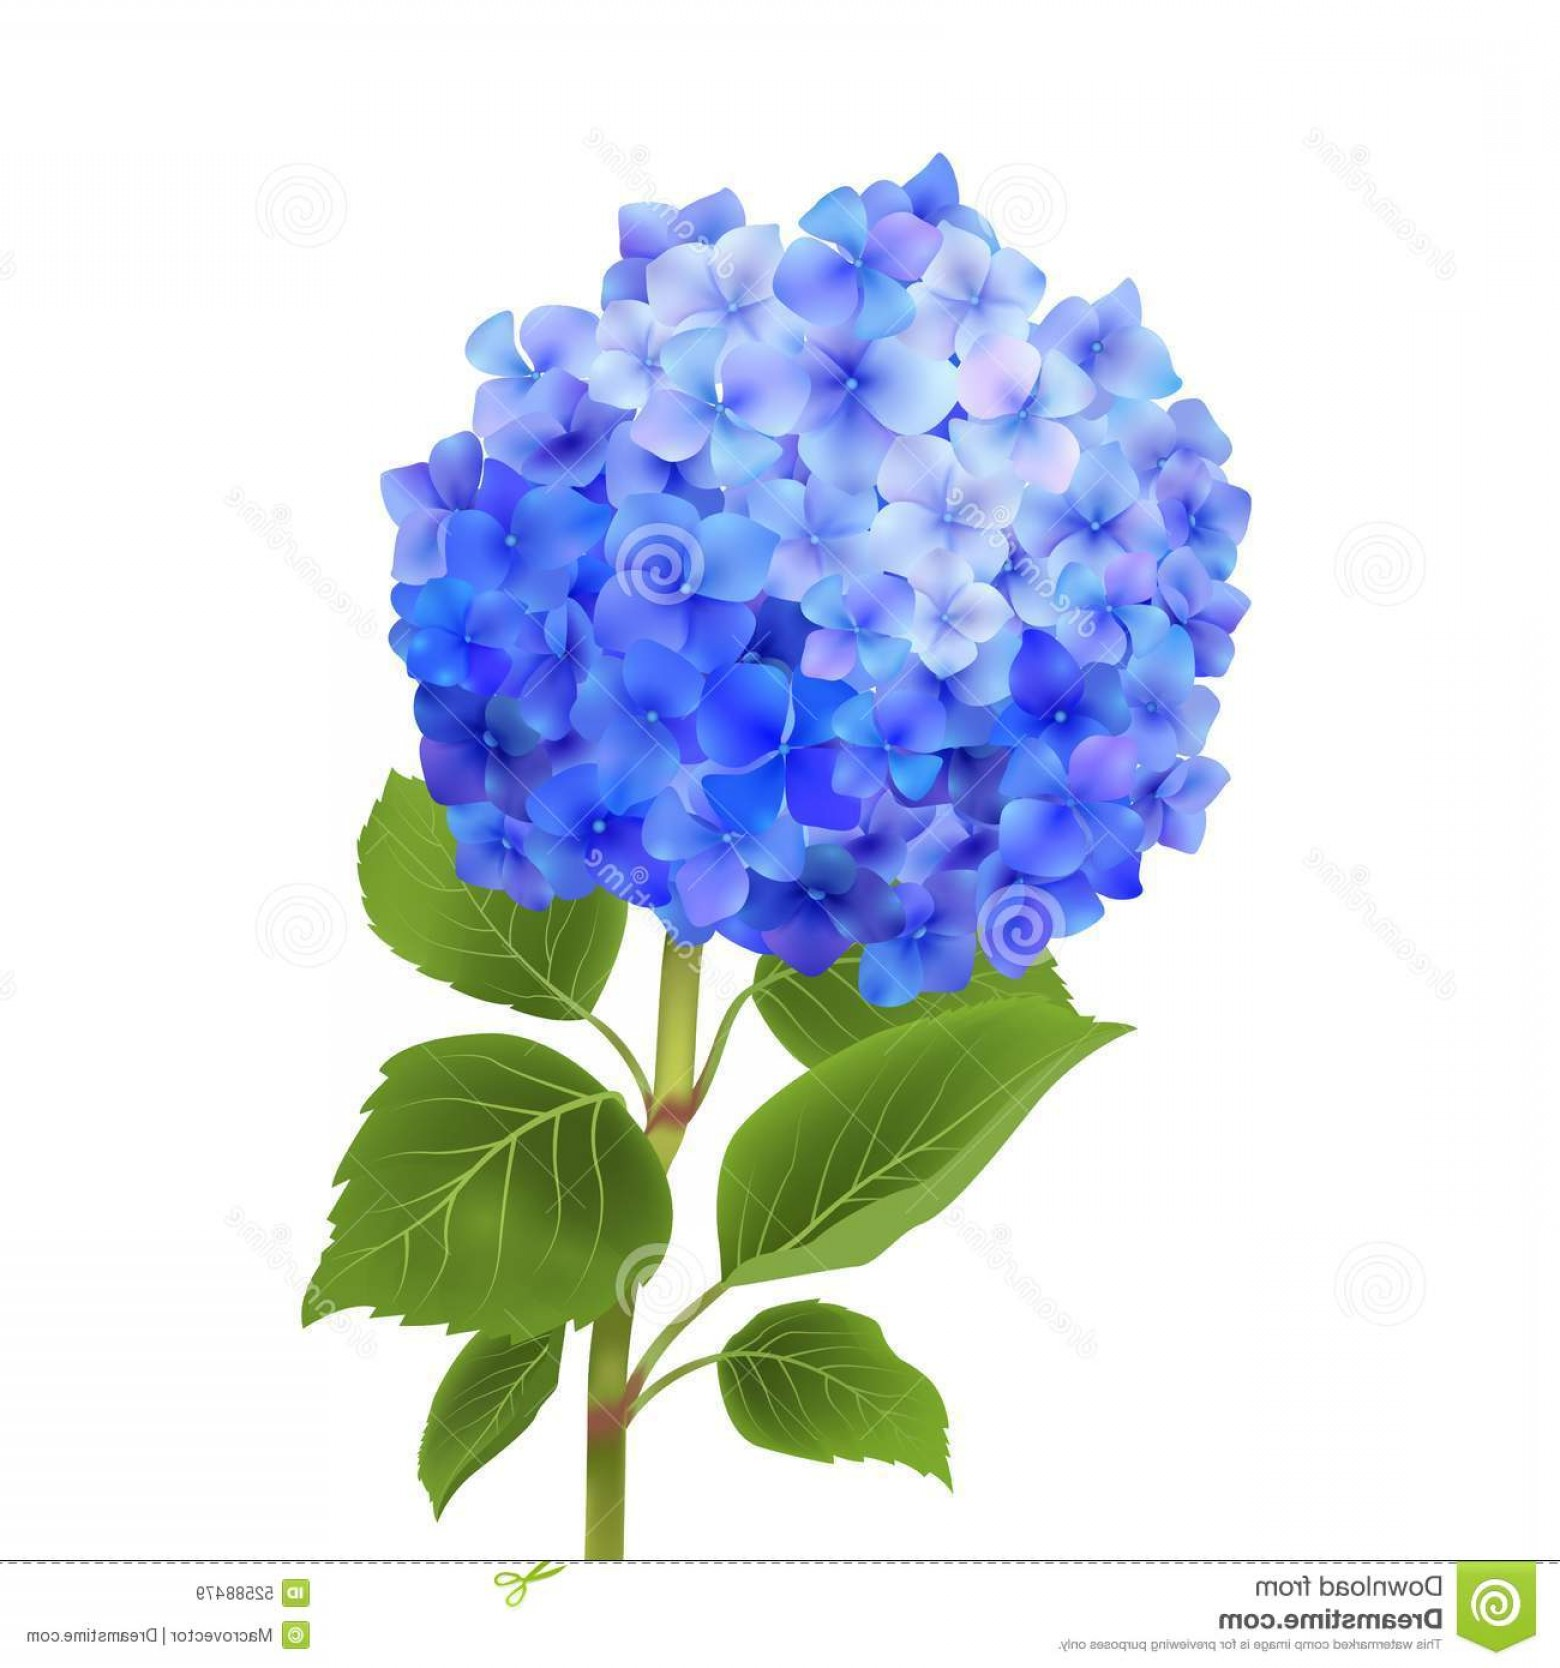 Hydrangea Vector Graphics: Stock Illustration Blue Hydrangea Isolated Realistic Flower White Background Vector Illustration Image